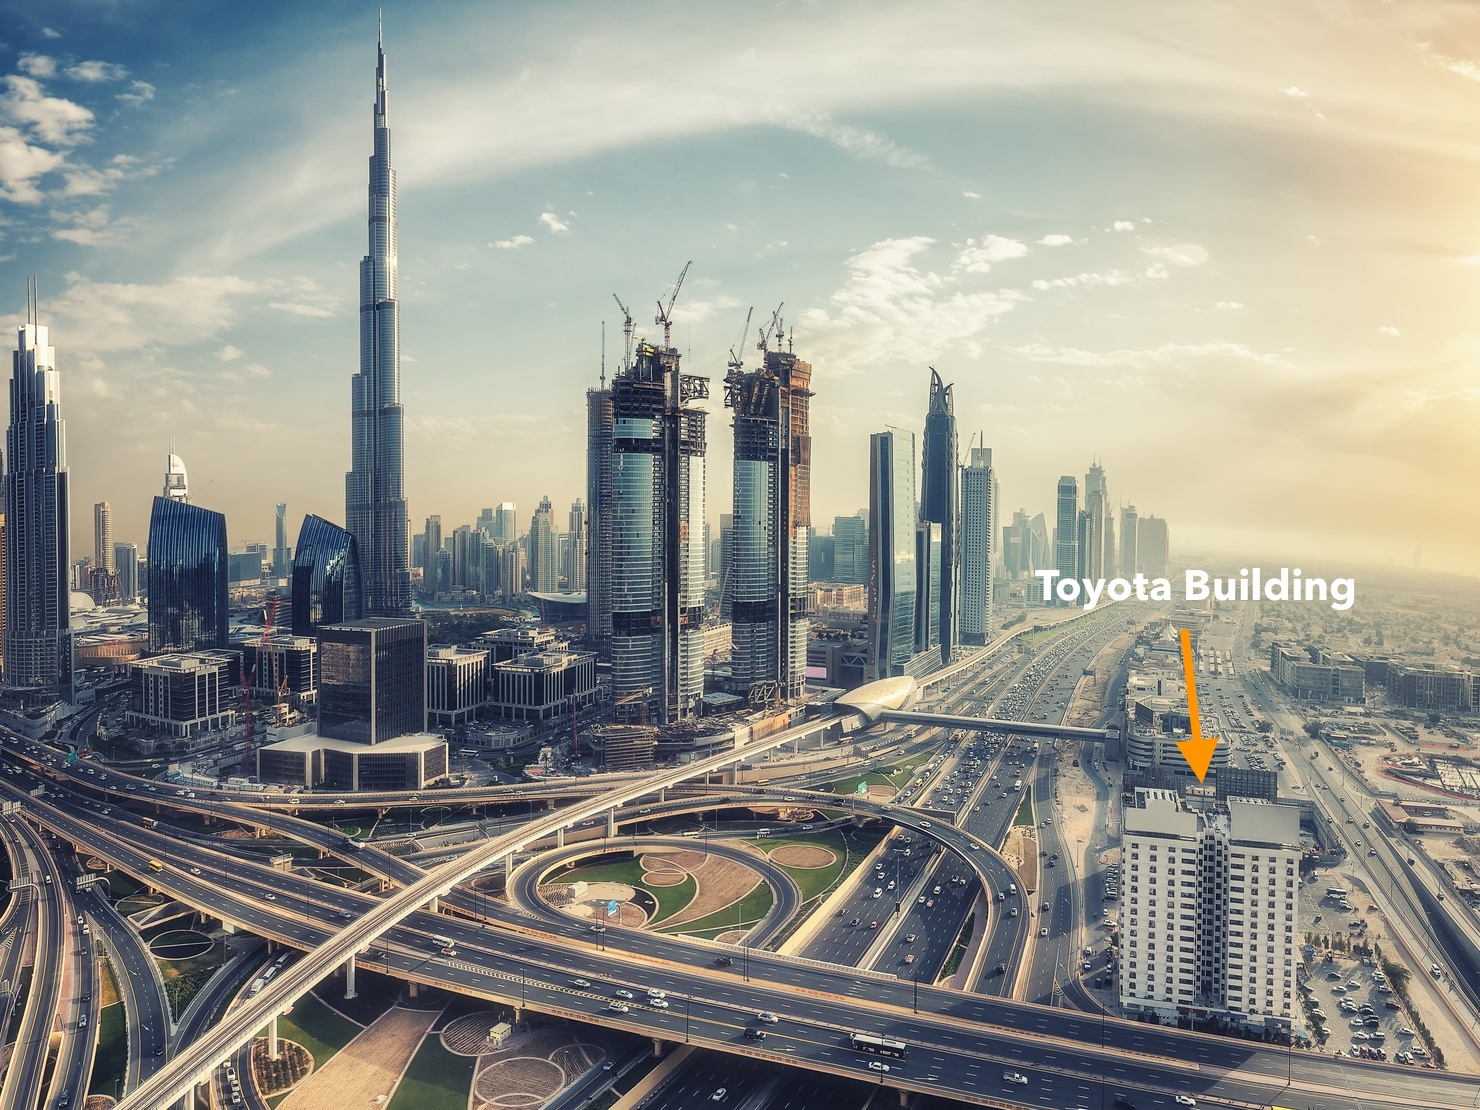 Toyota Building Sheikh Zayed Road